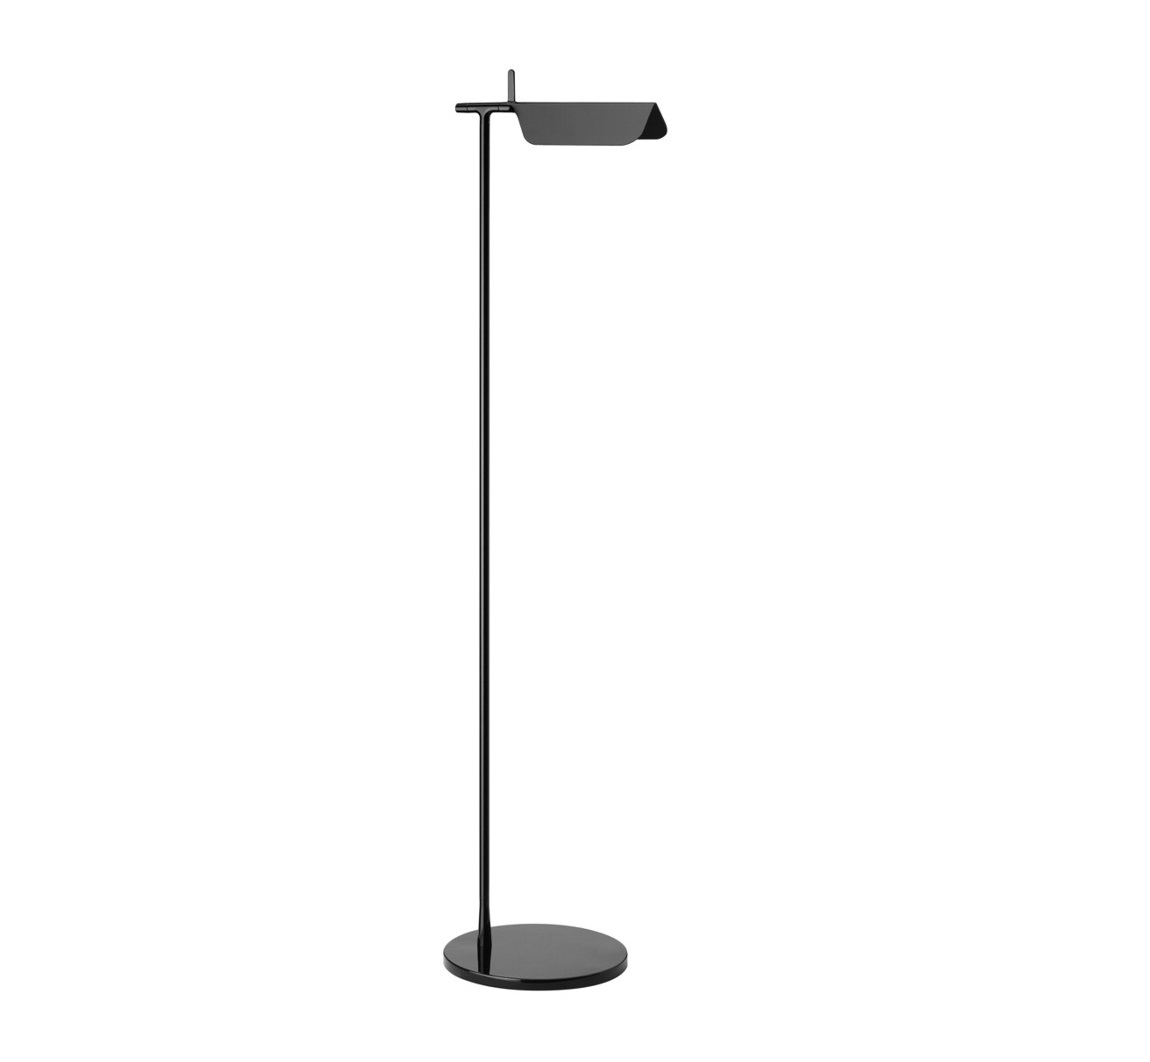 Tab F1 LED lámpara de Pie 110cm LED 5w Negro Brillante